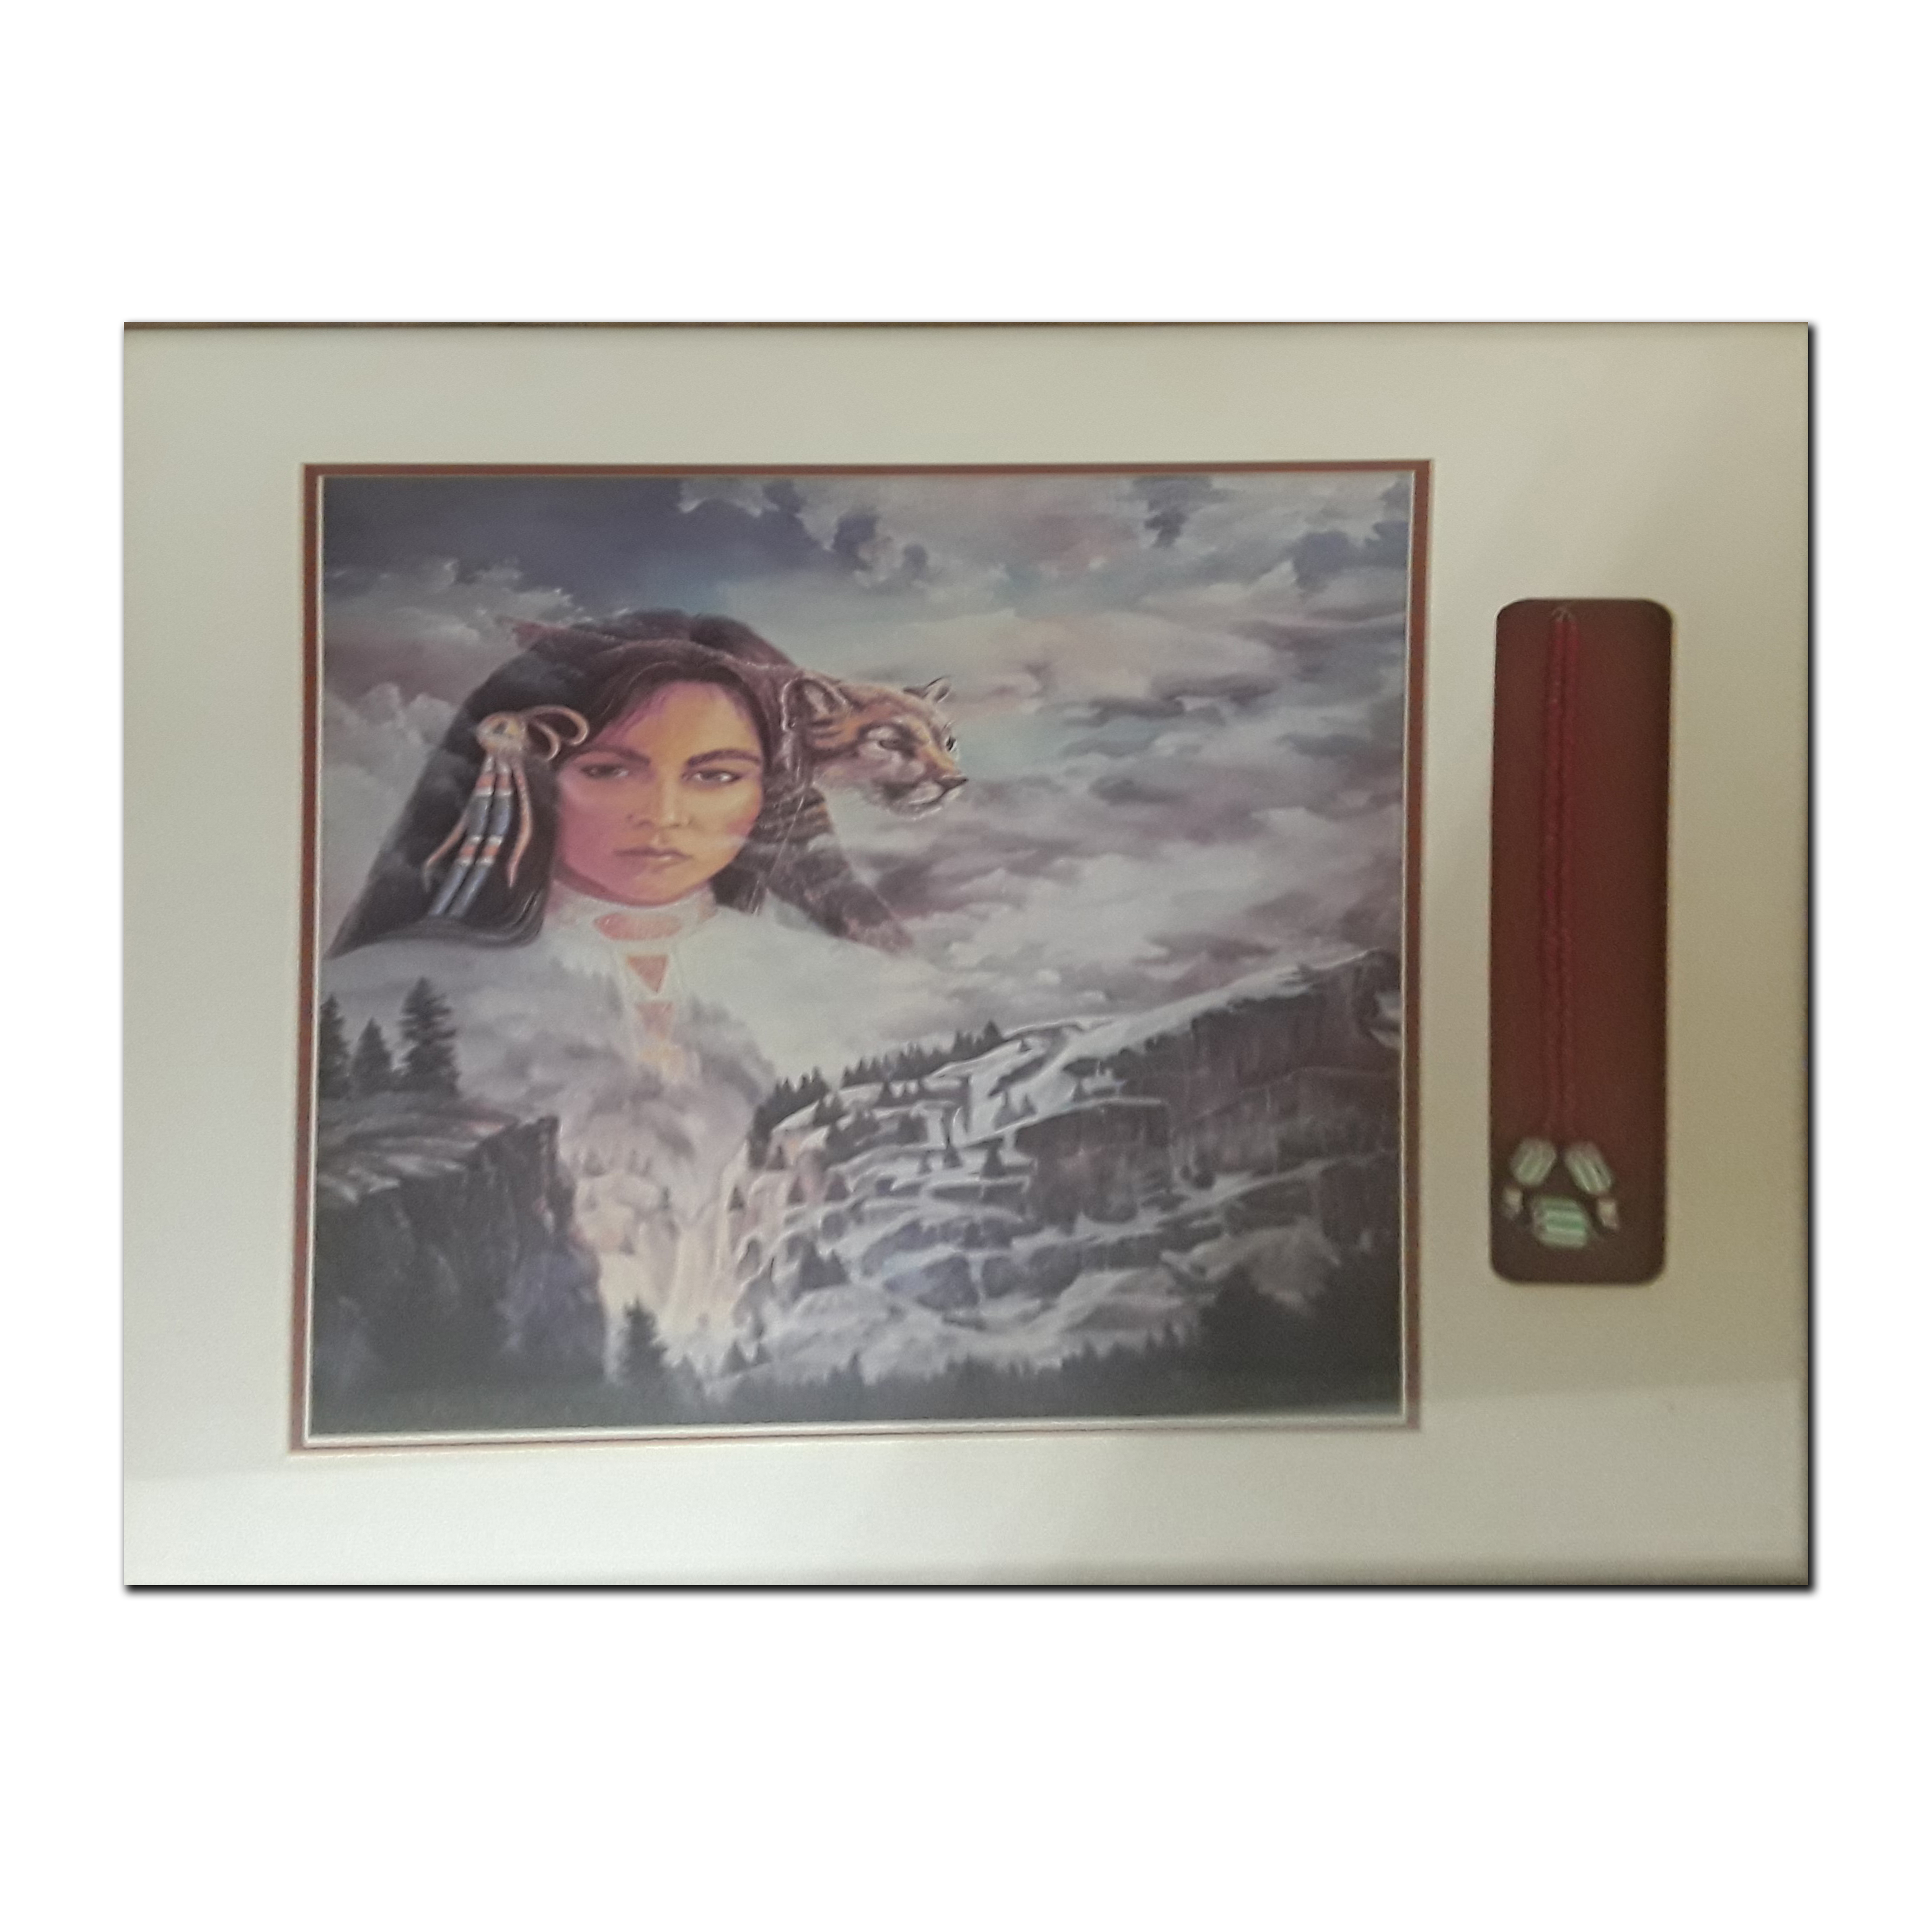 Native American Themed Framed Print With Accompanying Necklace (Art and Artifacts)